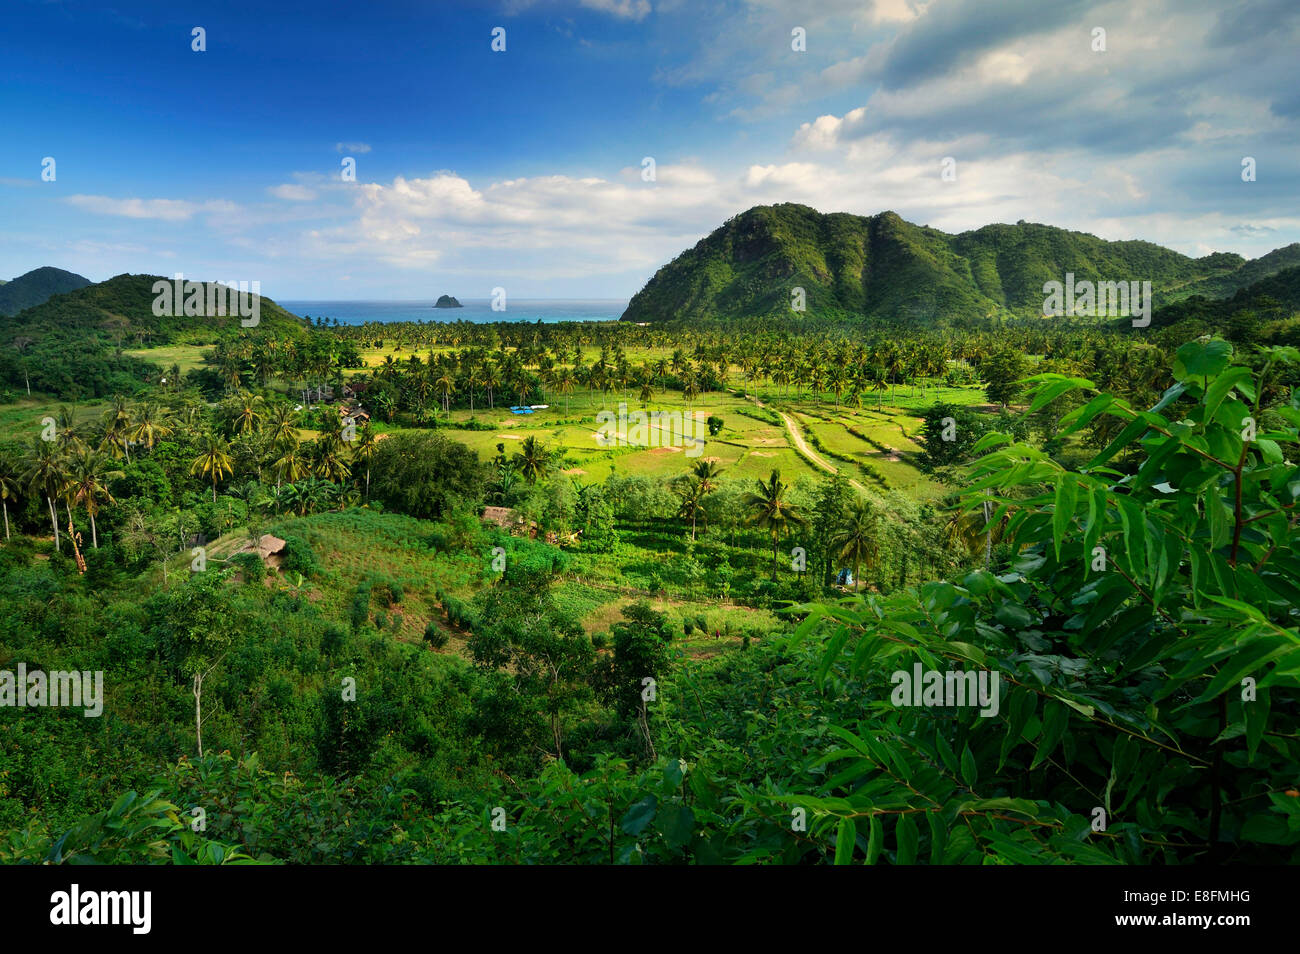 Indonesia, West Nusa Tenggara, Elevated view of farm, sea in background - Stock Image